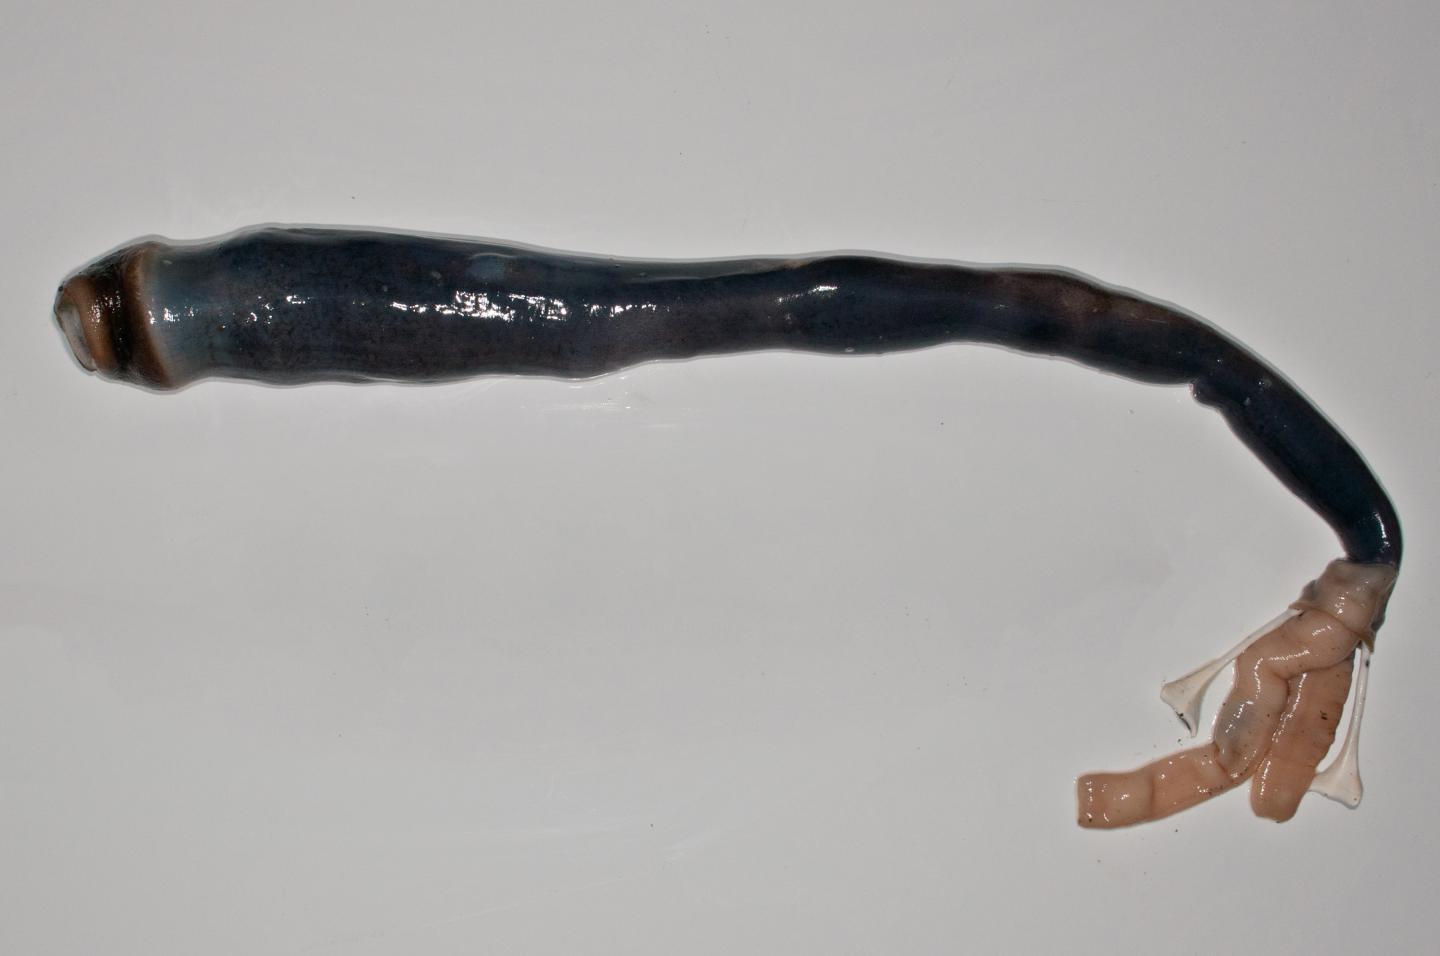 This is the first time thatscientists have found live specimens of the mud-burrowing giant shipworm (removed from its shell in this picture), which thrives on a gas toxic to most living creatures